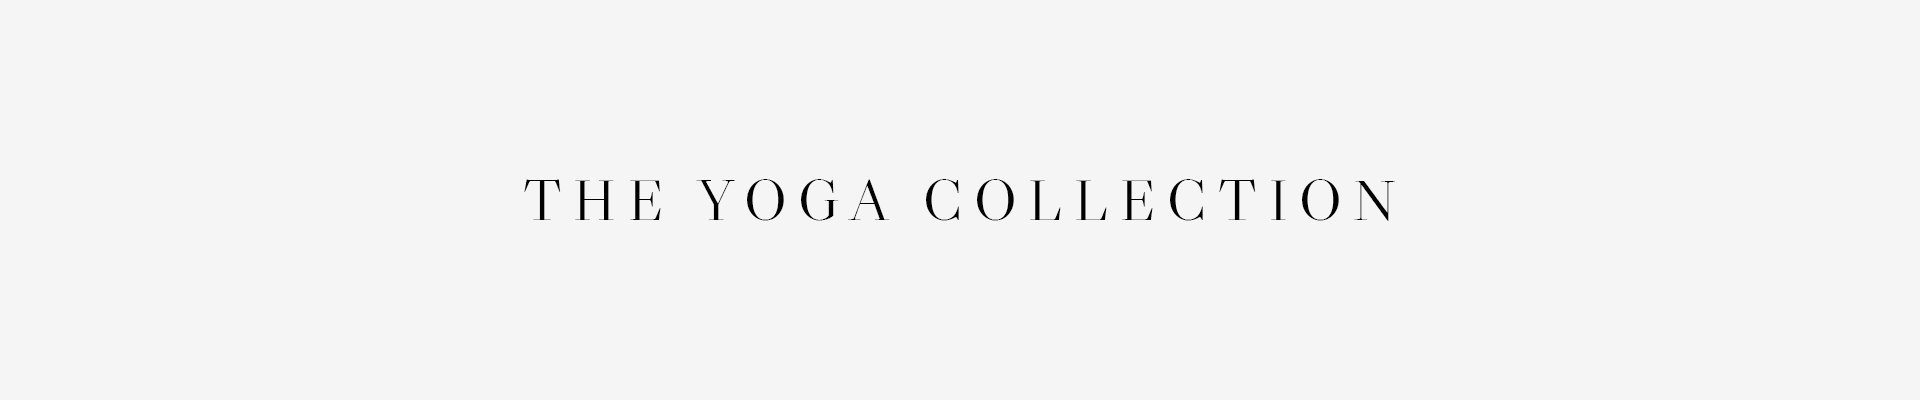 The Yoga Collection